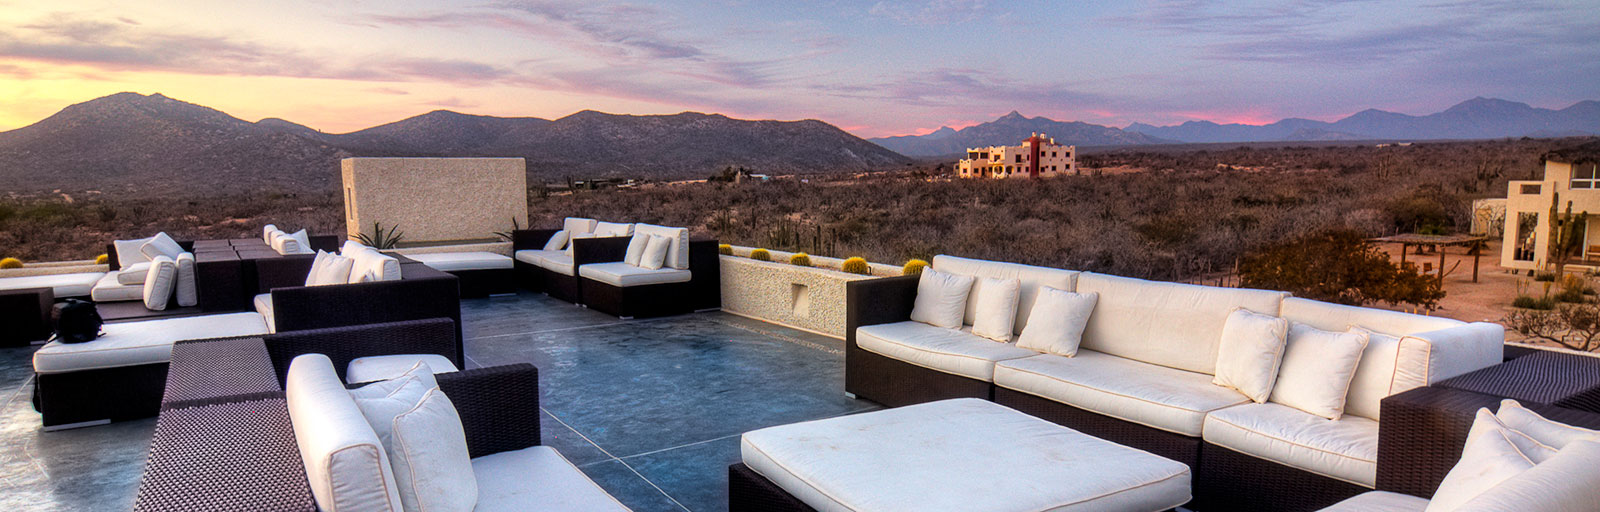 Mexico Yoga Retreat Center in Baja: Roof Deck Lounge